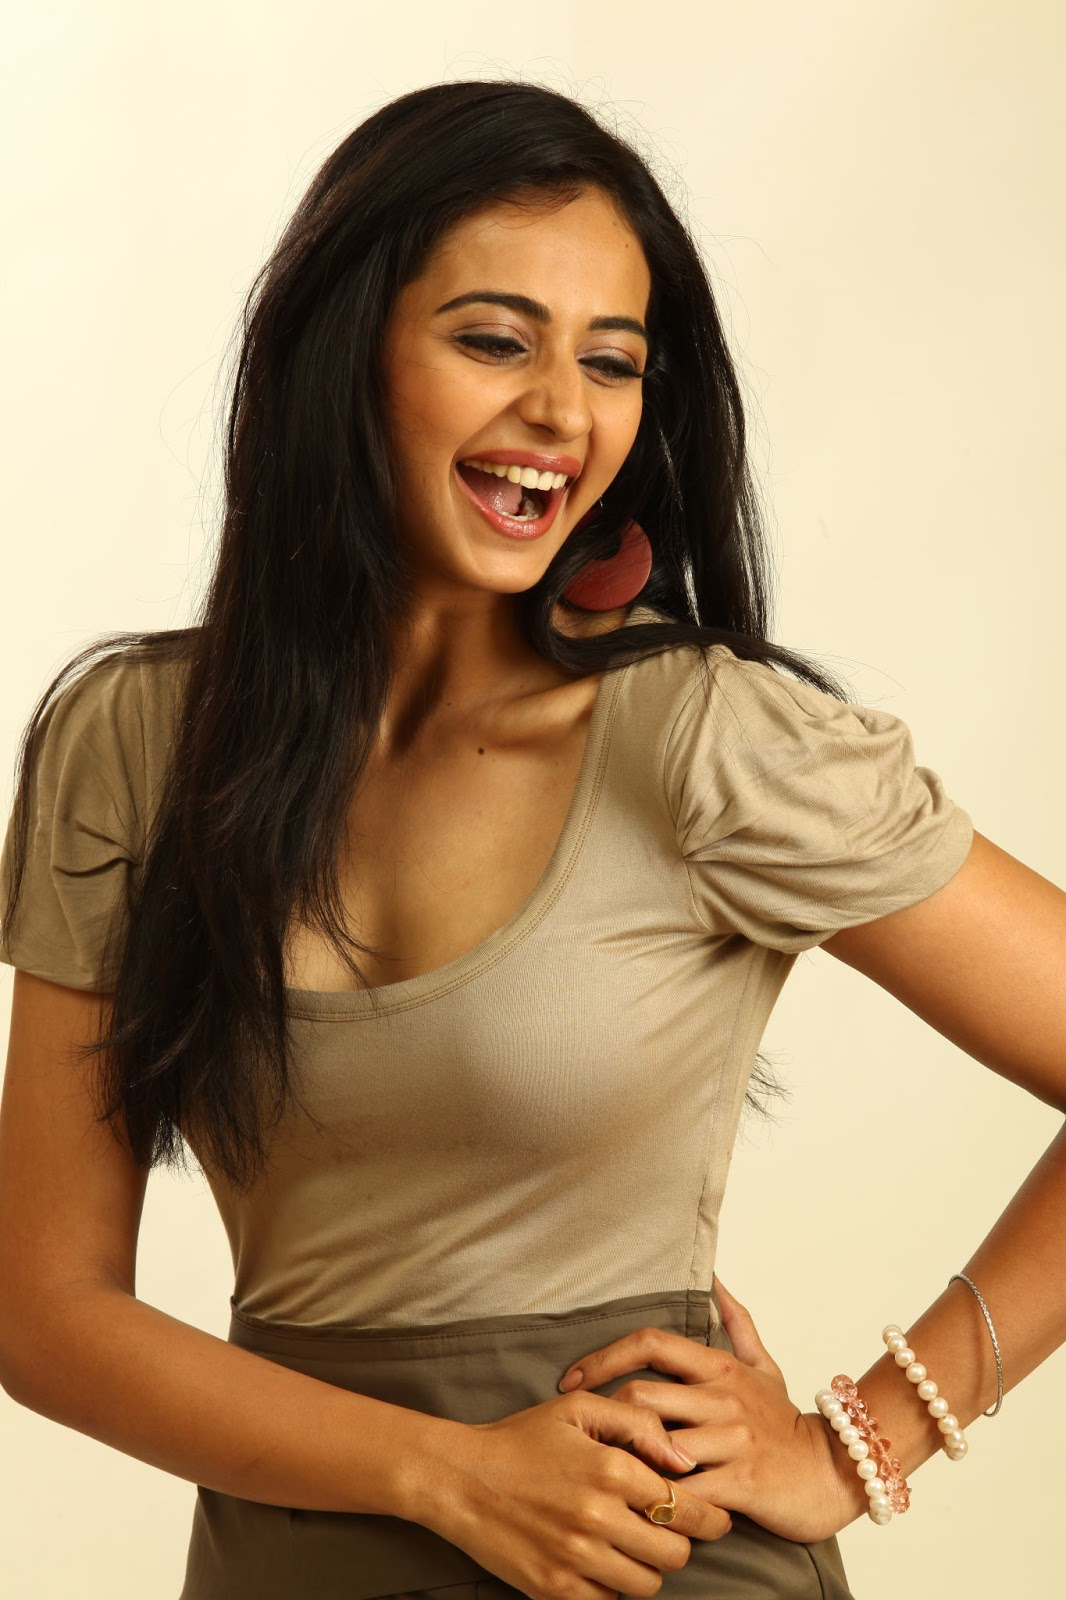 Rakul Preet Singh Mouth Open  Smiling Photos